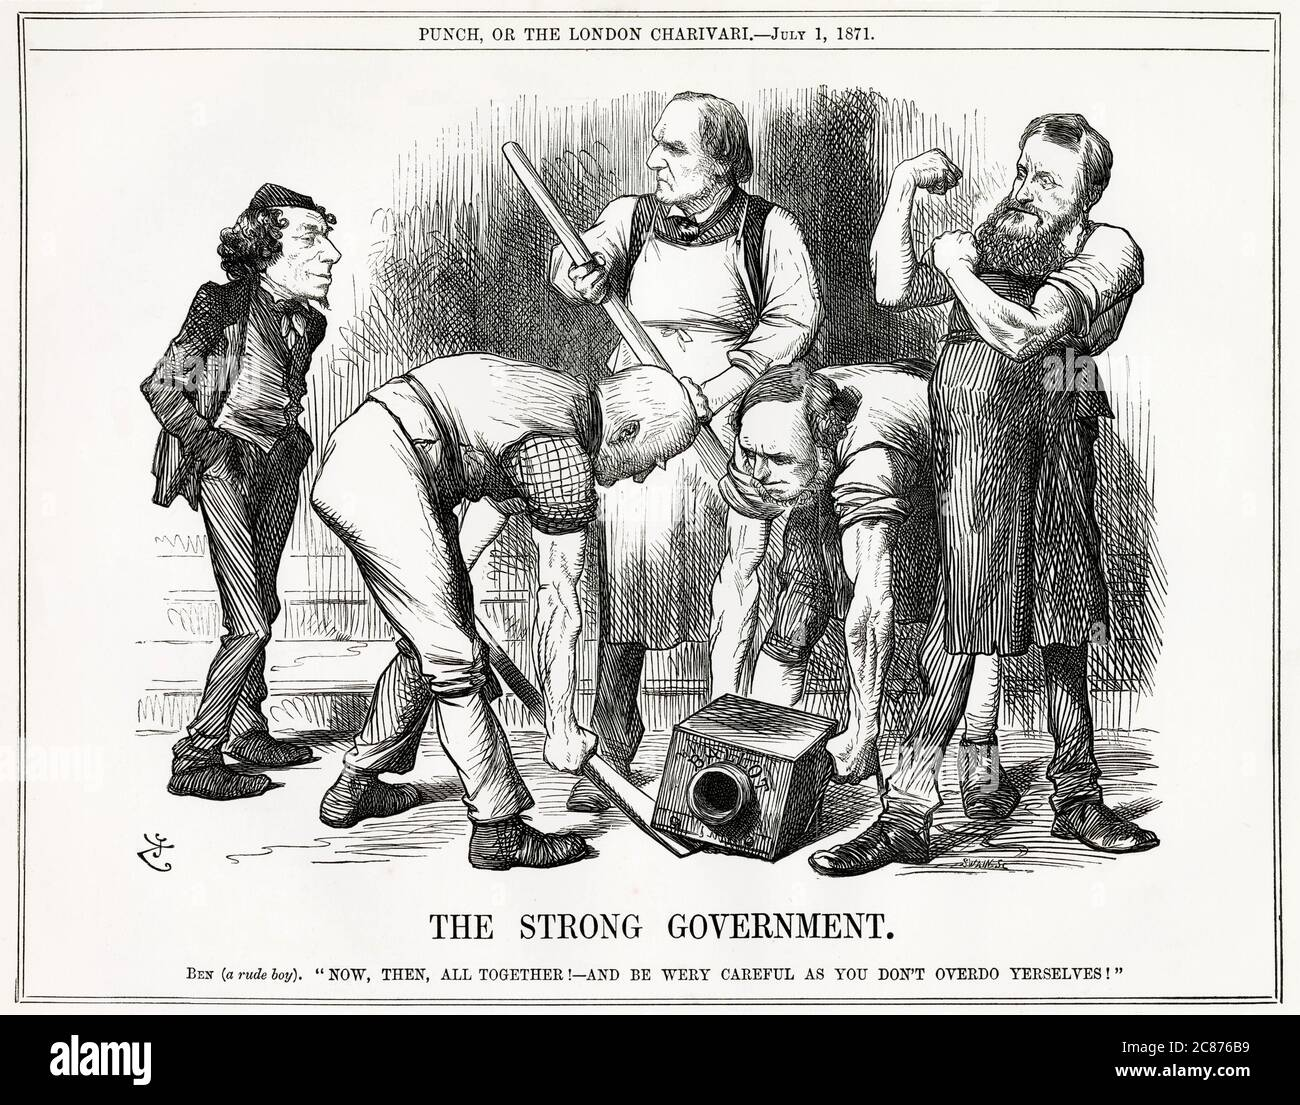 Cartoon, The Strong Government -- a satirical comment on Gladstone's government introducing the Ballot Bill (legislation for the secret ballot in elections) towards the end of a busy parliamentary session. Rude boy Disraeli tells Gladstone and his three colleagues to be careful not to overdo things.      Date: 1871 Stock Photo